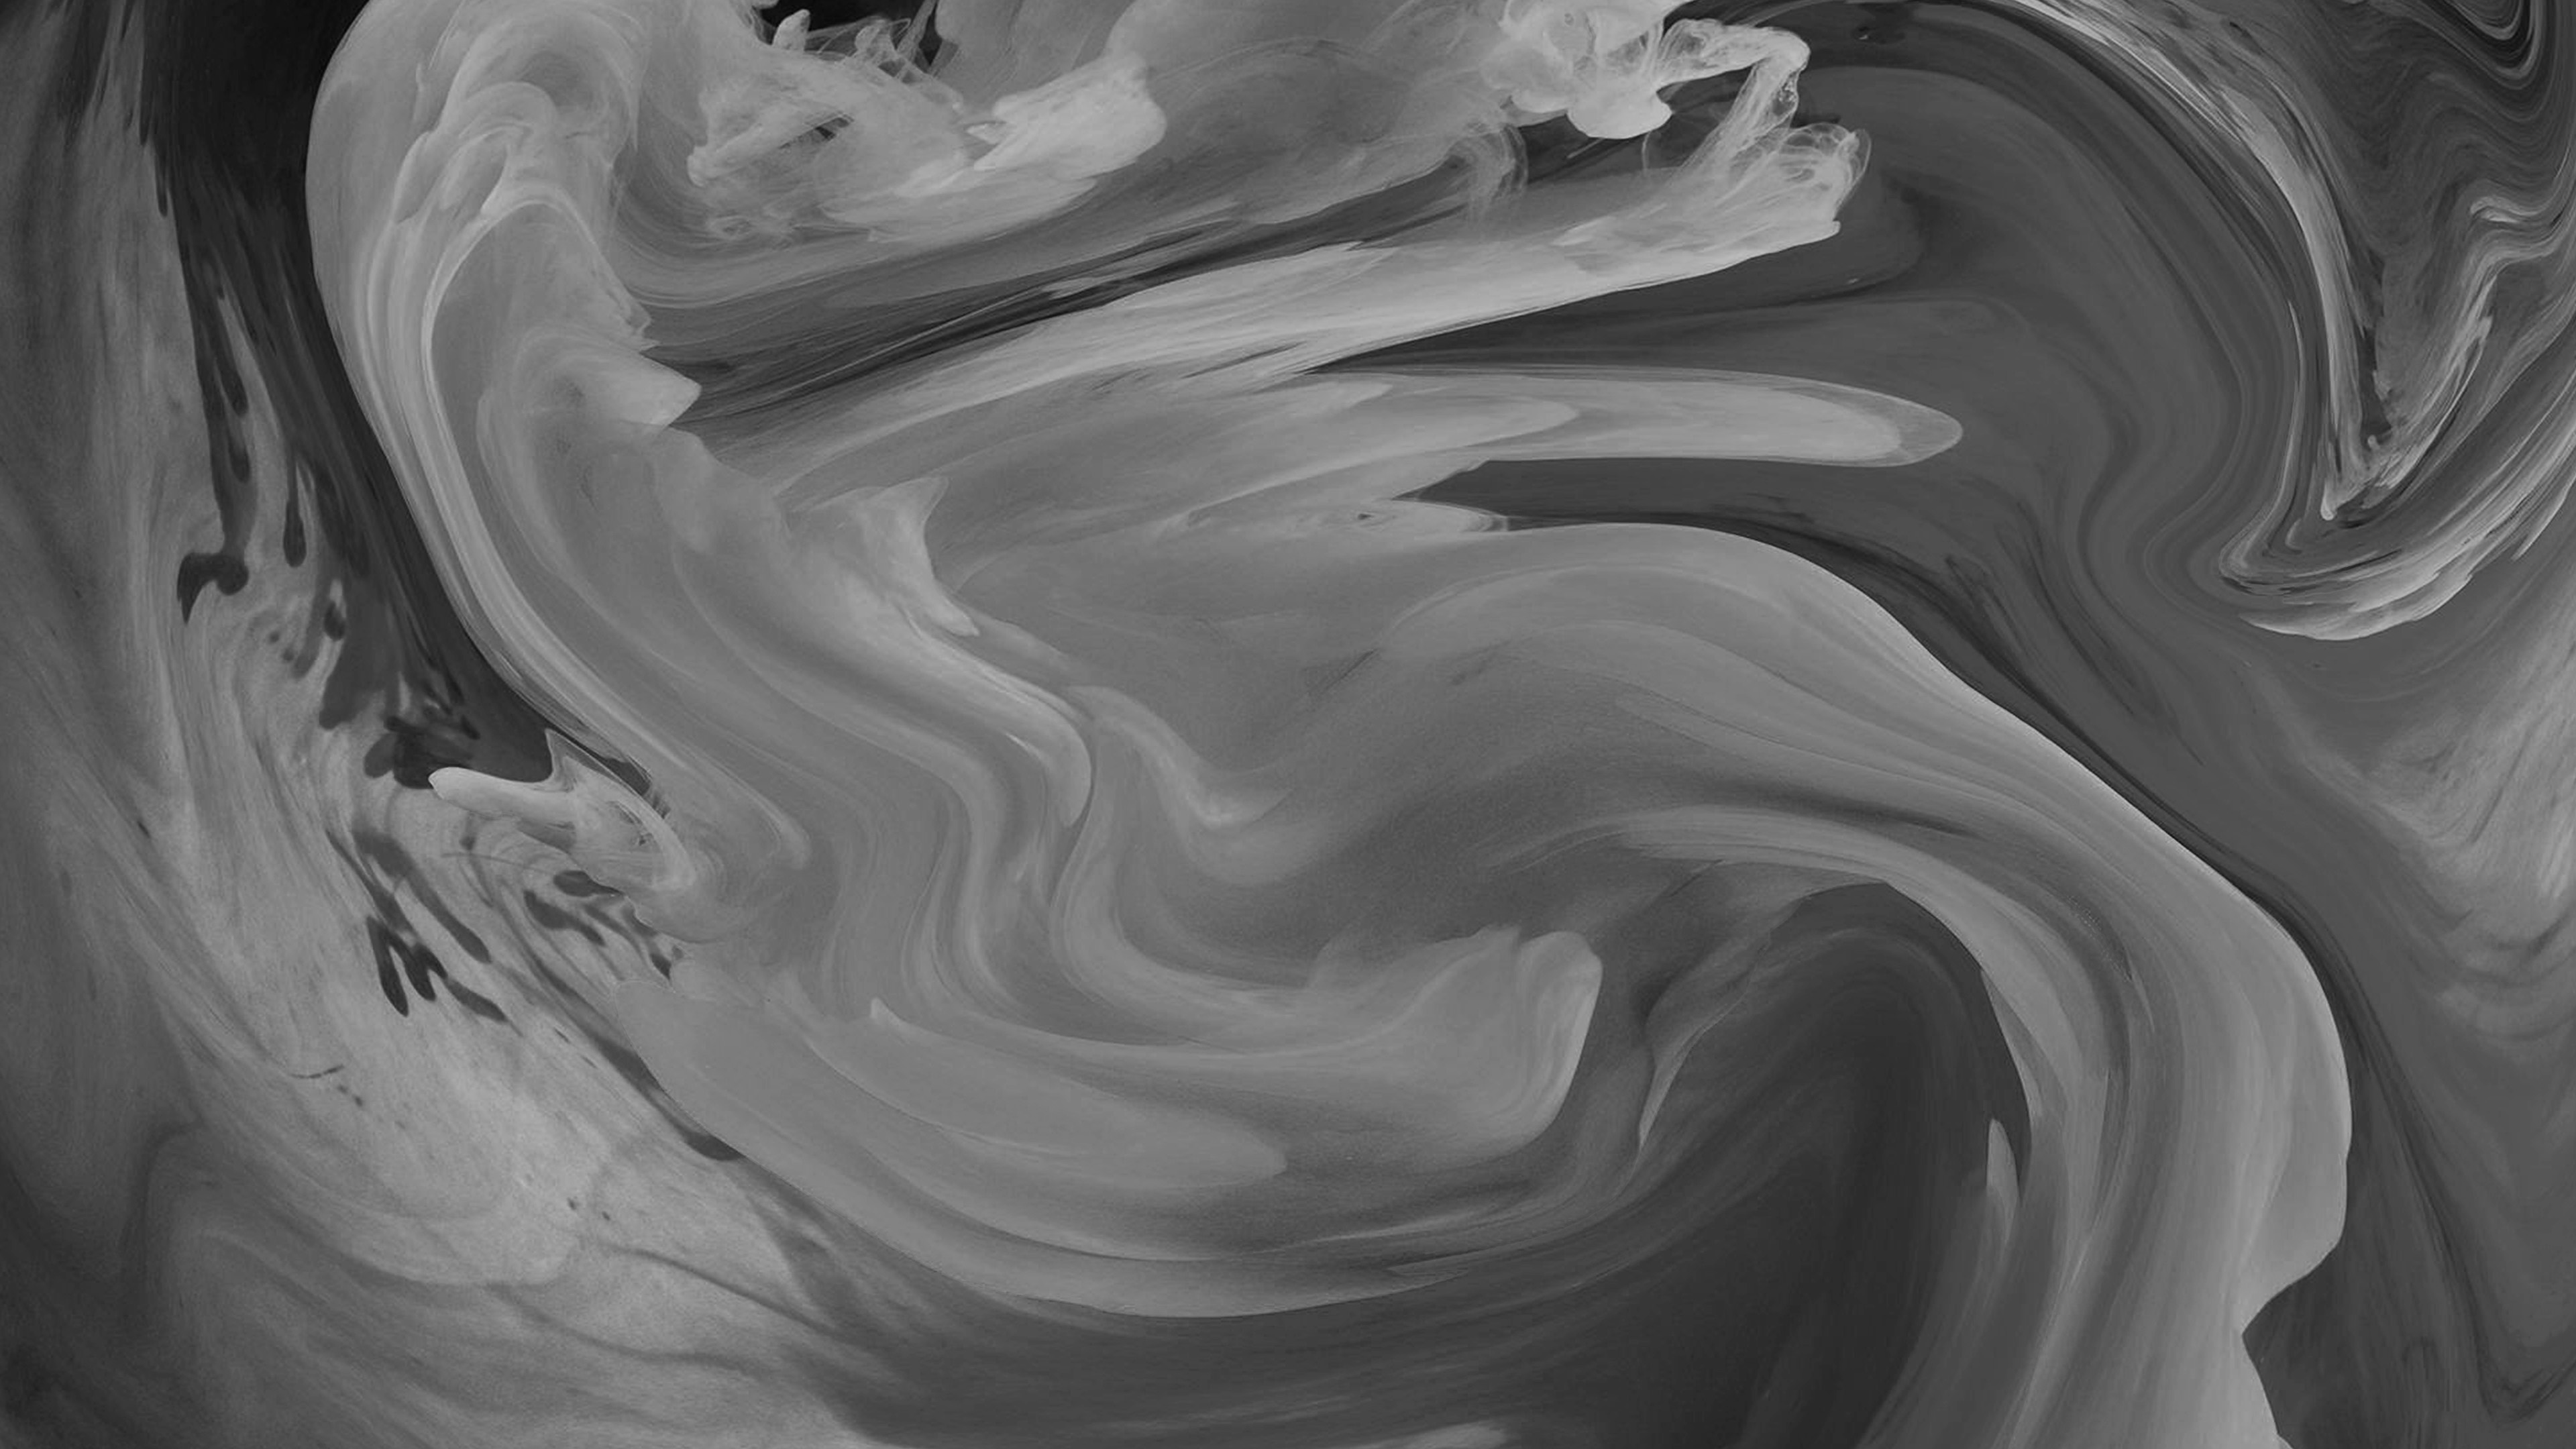 Macbook Wallpaper Fall Vl09 Hurricane Swirl Abstract Art Paint Dark Bw Pattern